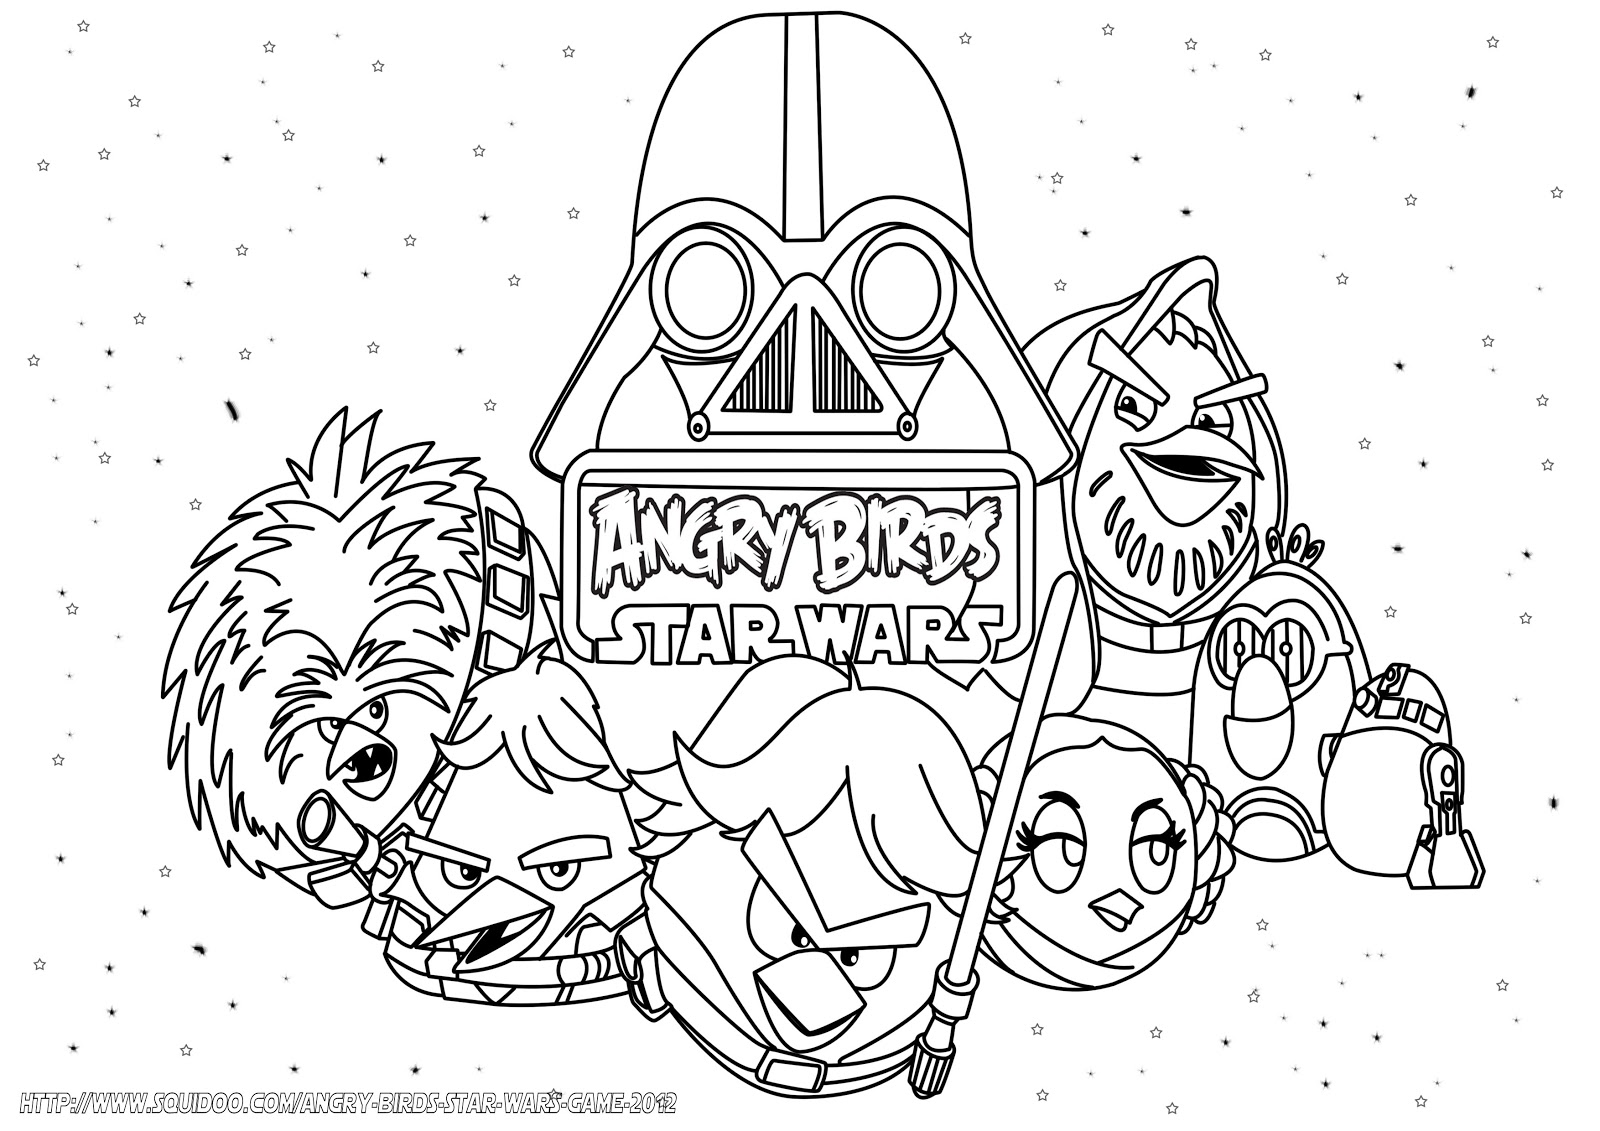 Angry Birds Starwars Free Colouring Pages Angry Birds Wars Coloring Pages Printable